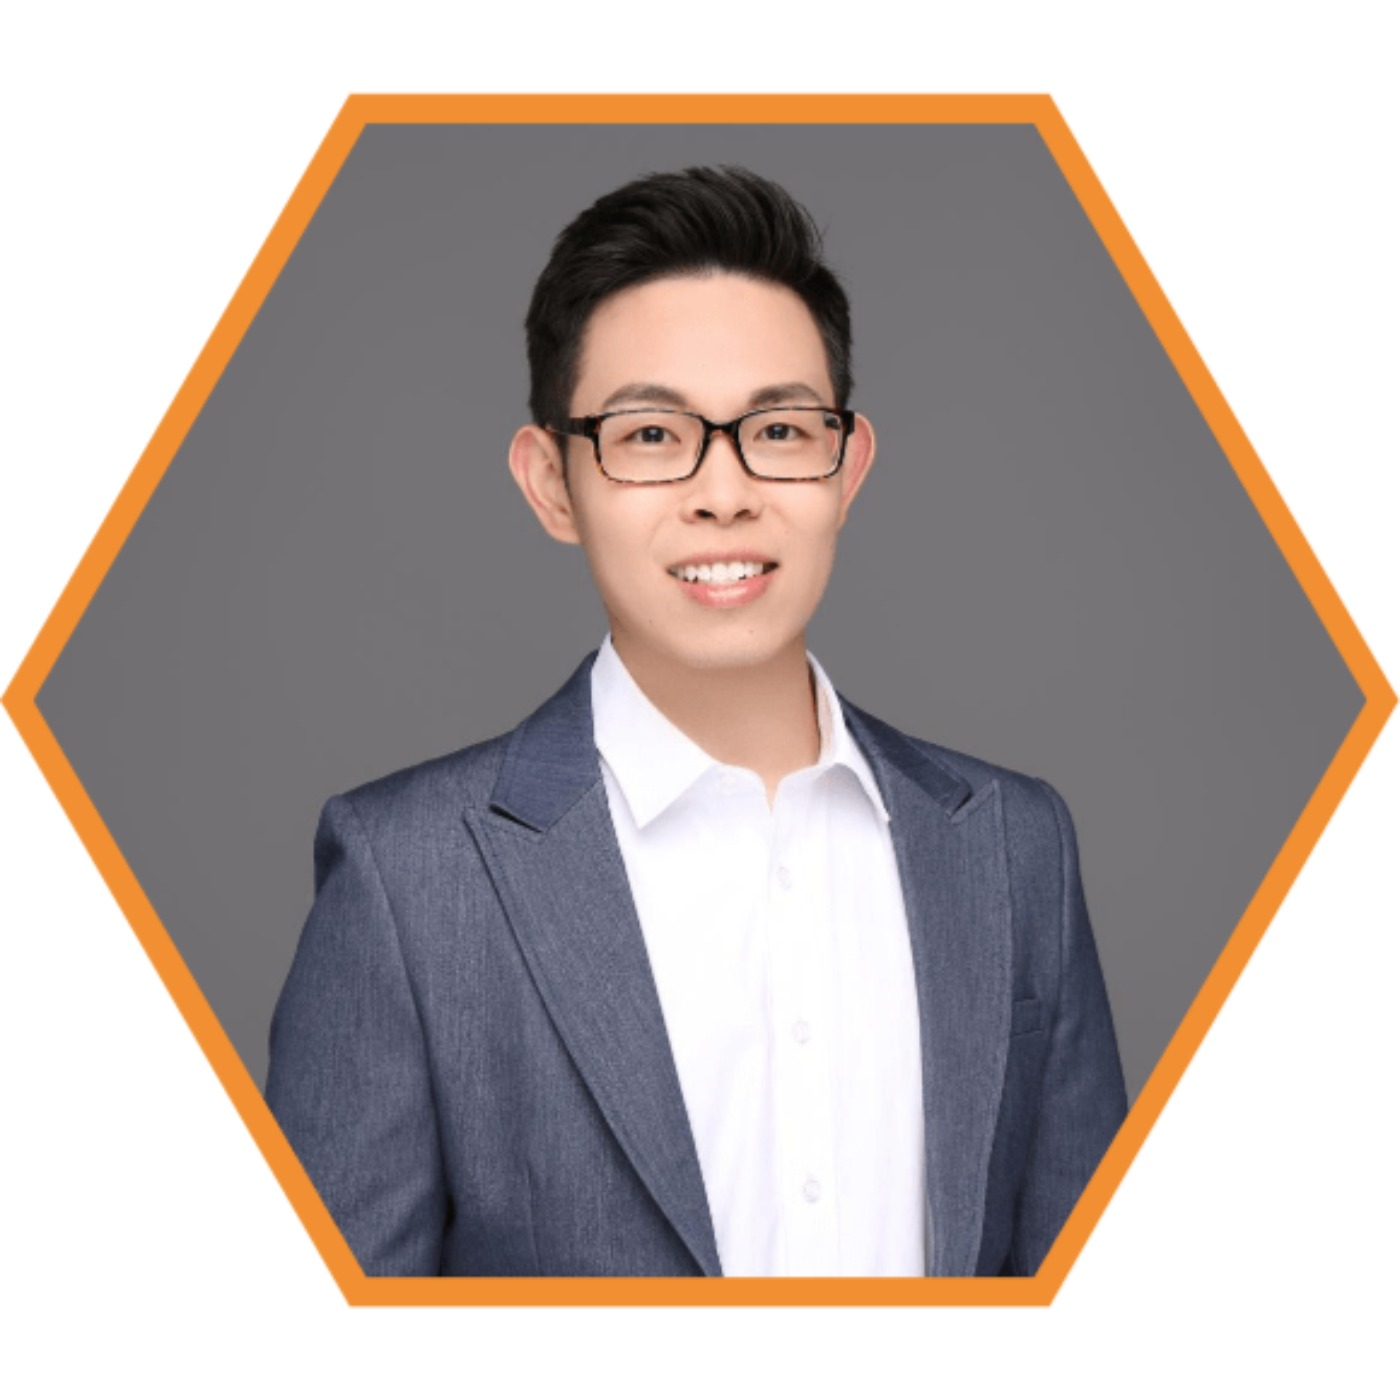 Andy Tay: Forbes, awards and championing diversity in STEM